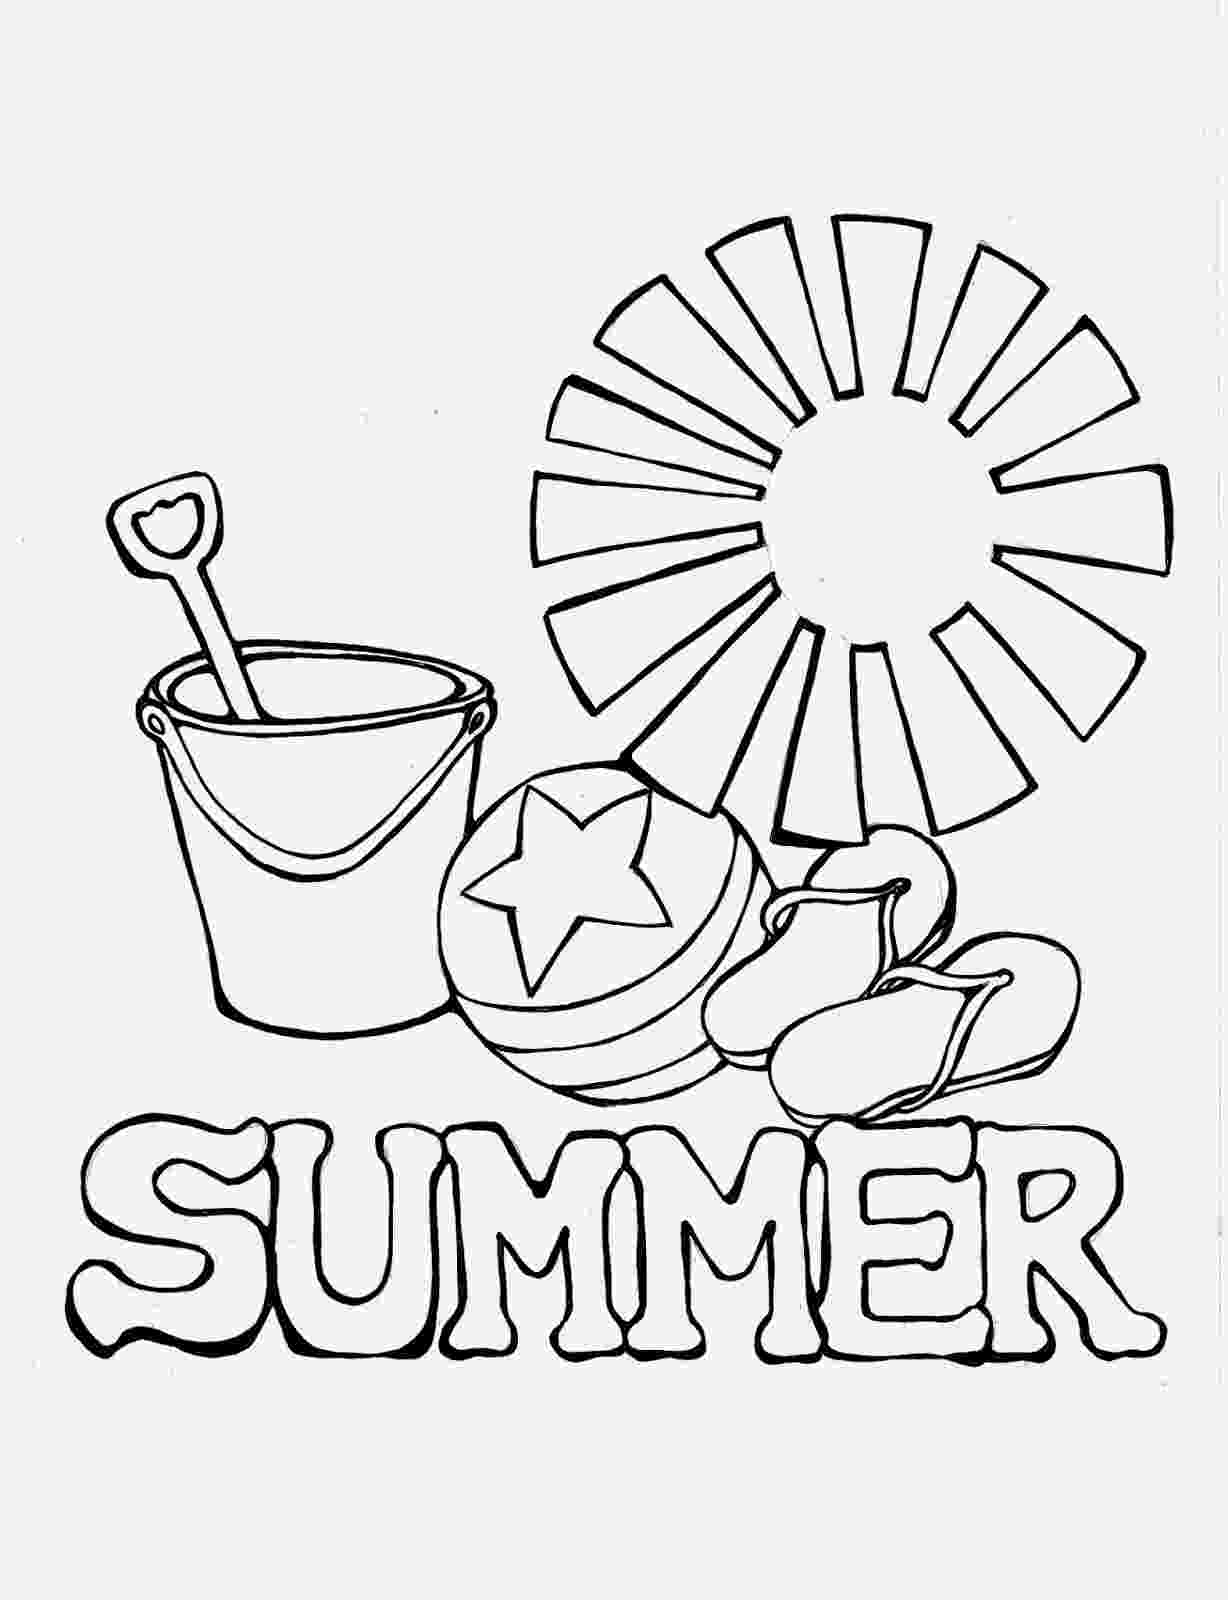 summer coloring pages for kids printable summer coloring pages for kids coloring pages for kids coloring pages printable summer for kids